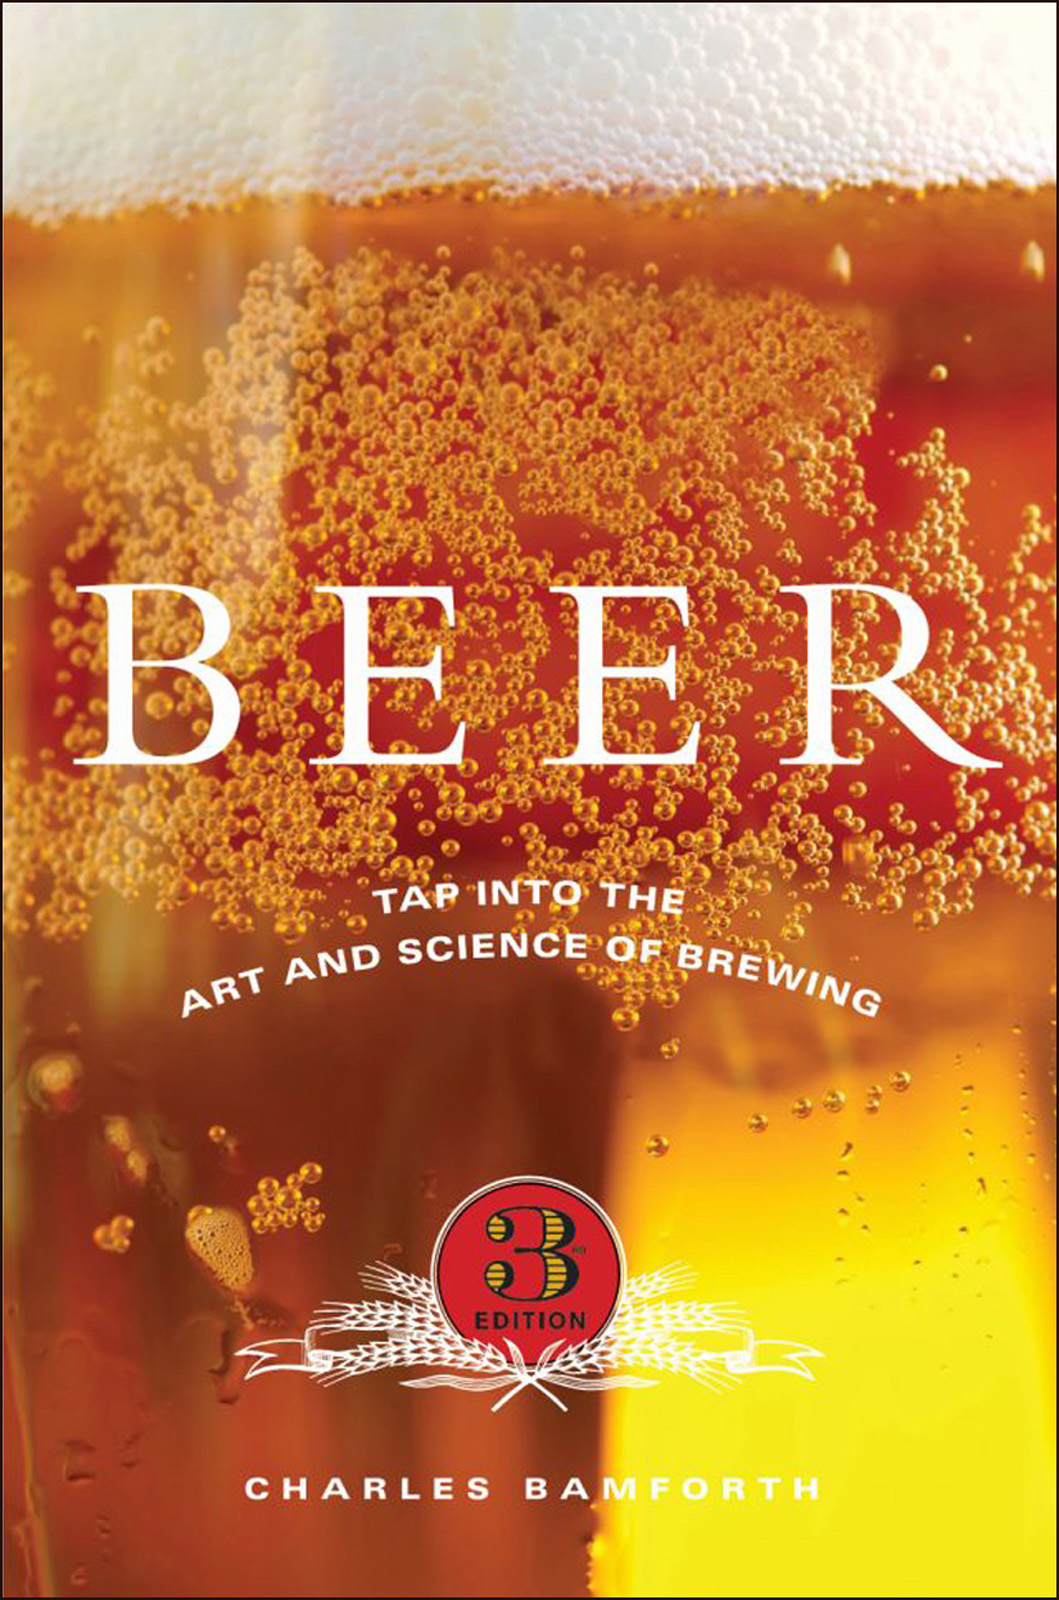 Beer:Tap into the Art and Science of Brewing